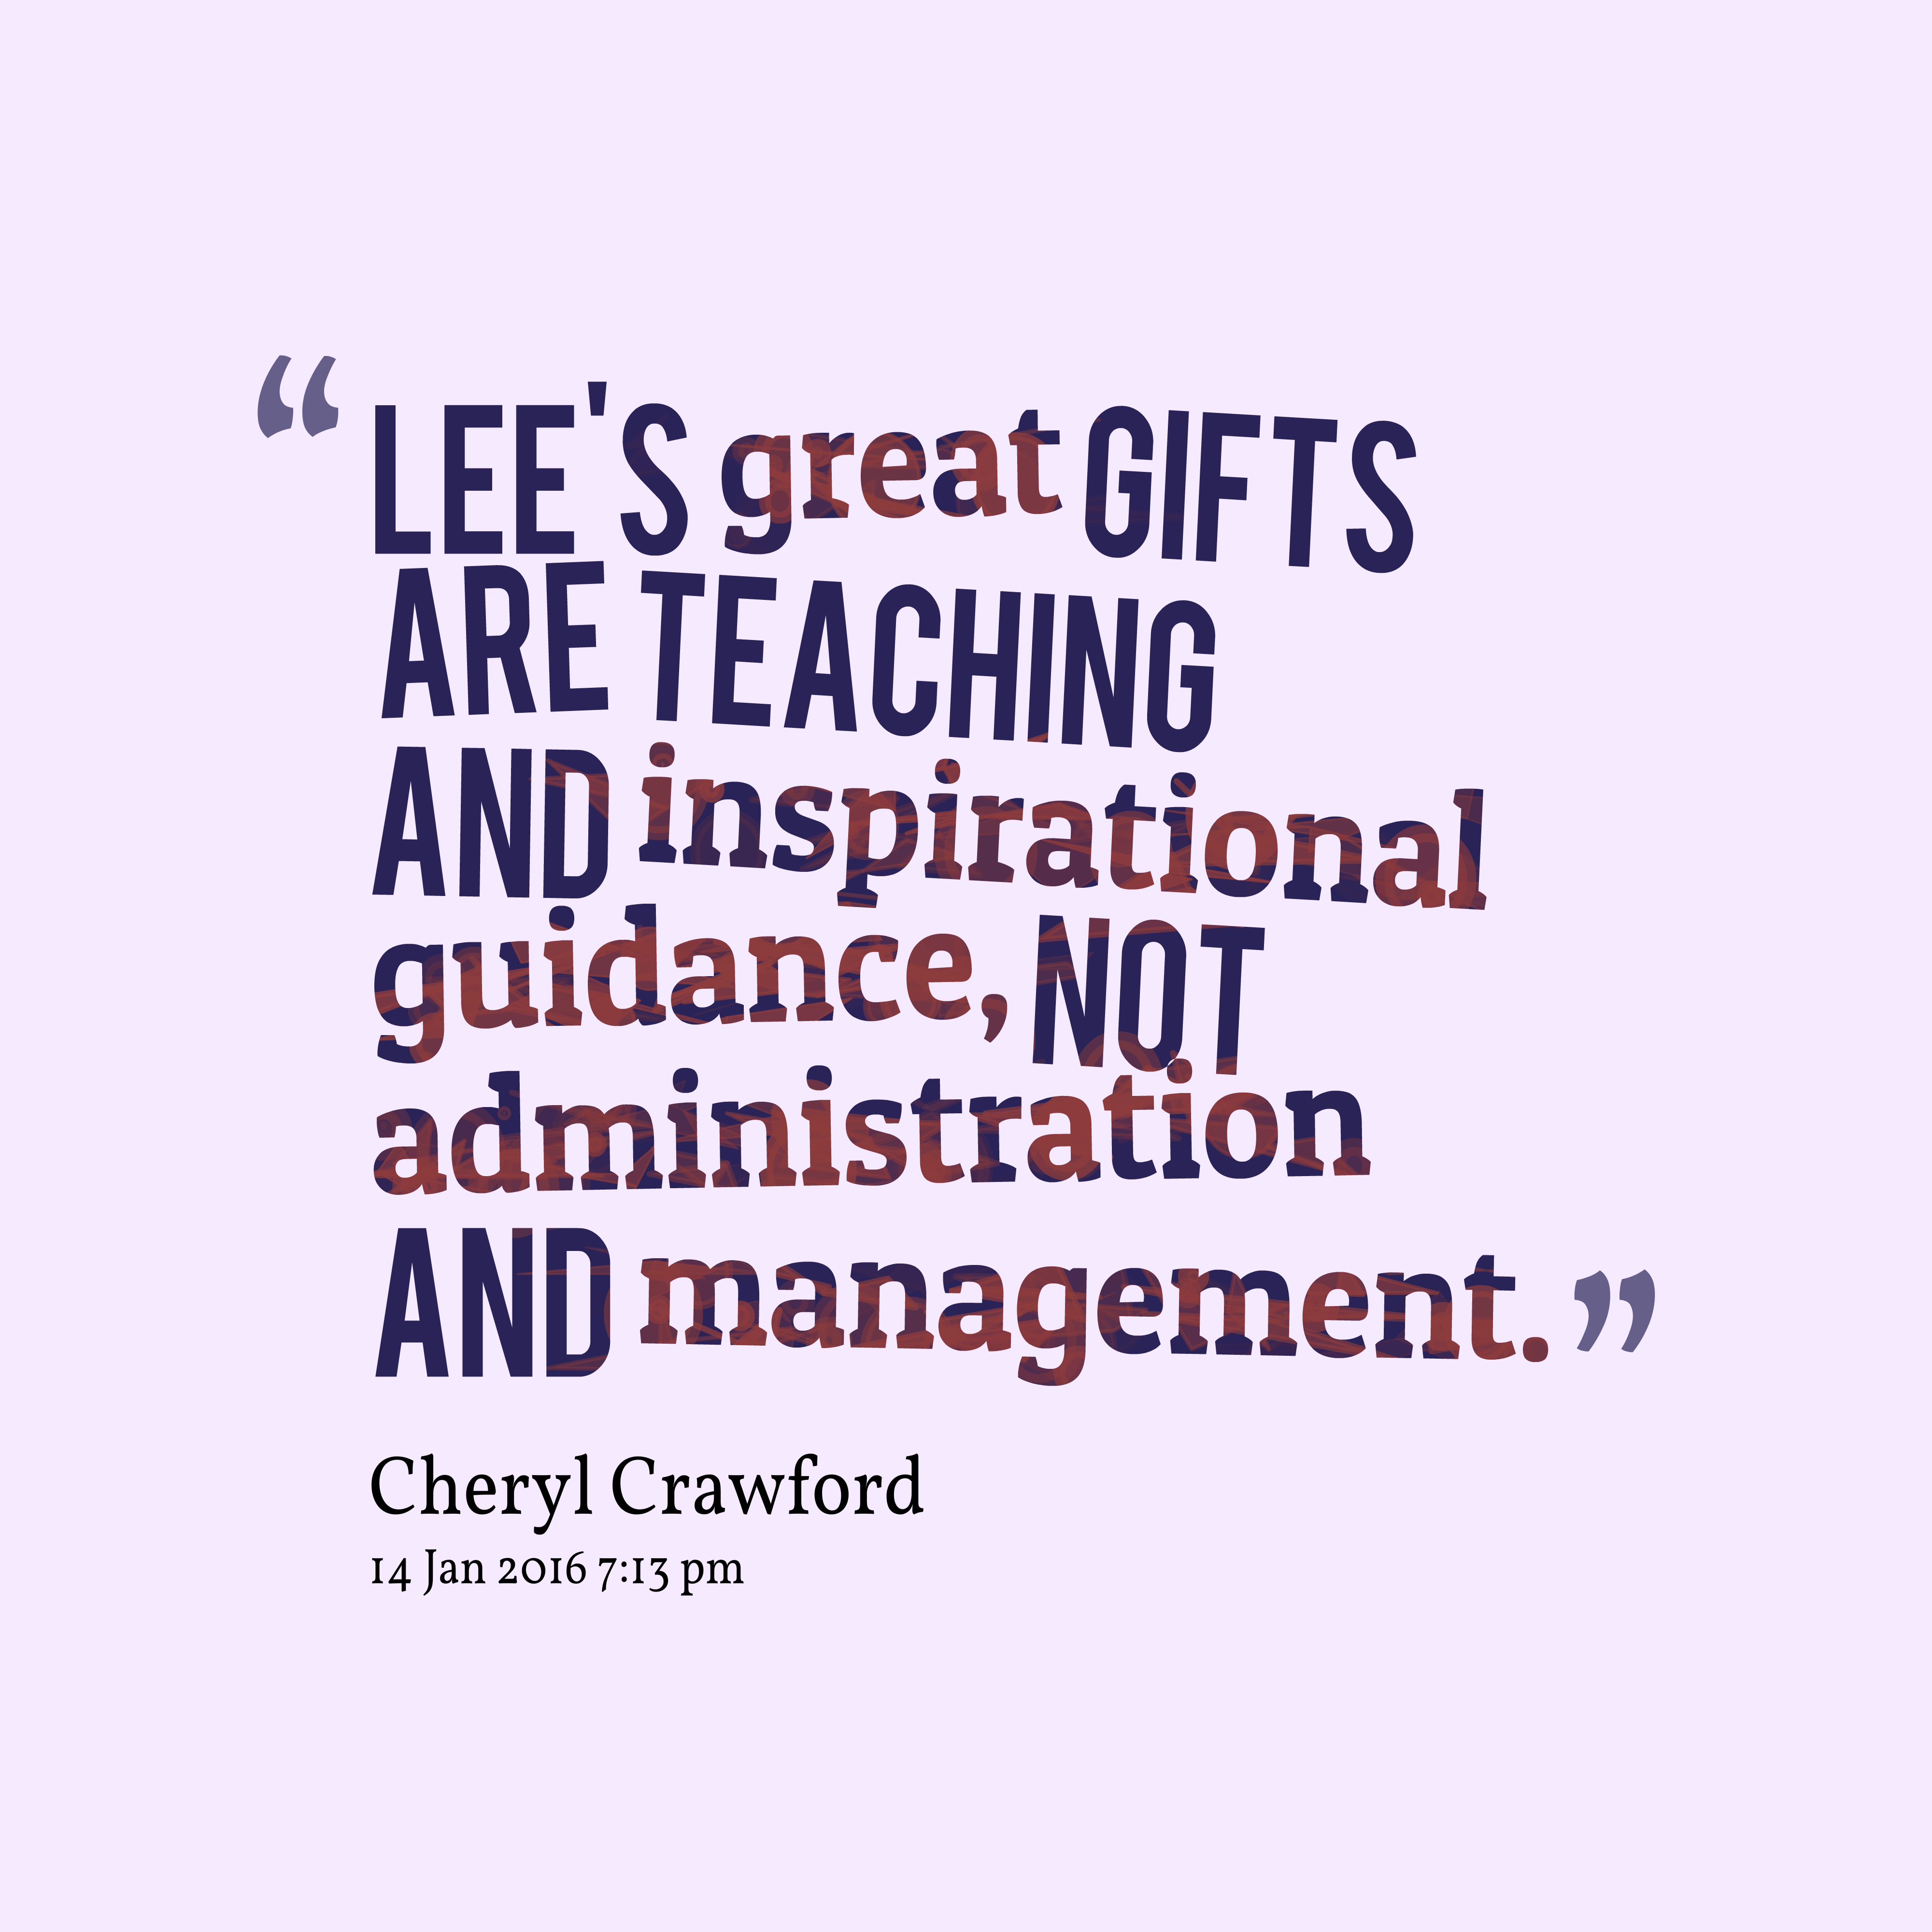 Quotes image of Lee's great gifts are teaching and inspirational guidance, not administration and management.